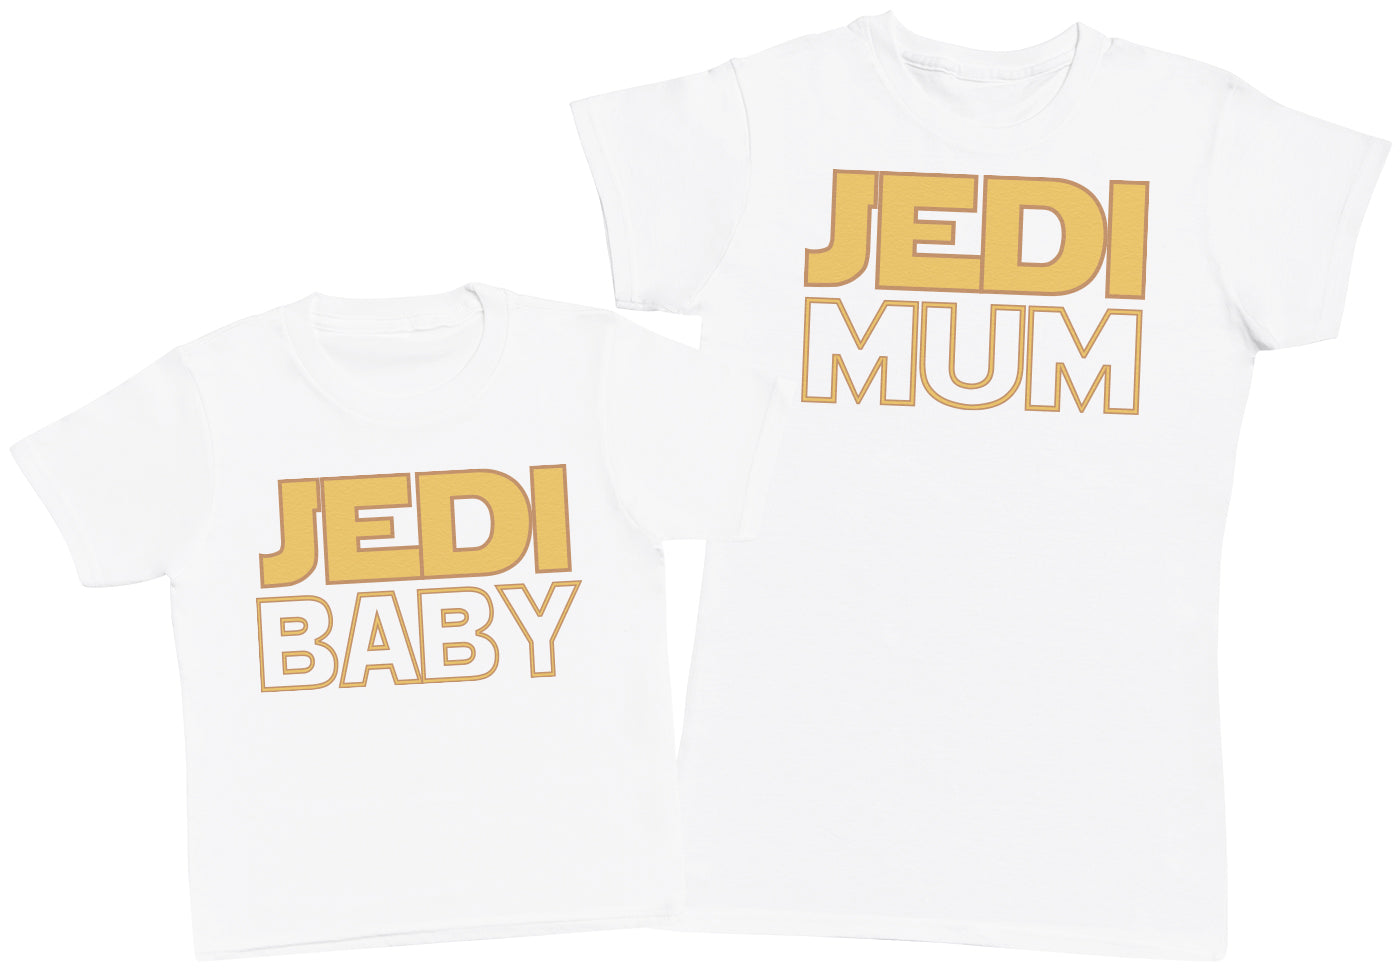 Jedi Baby & Jedi Mum - Kid's Gift Set with Kid's T-Shirt & Mother's T-Shirt